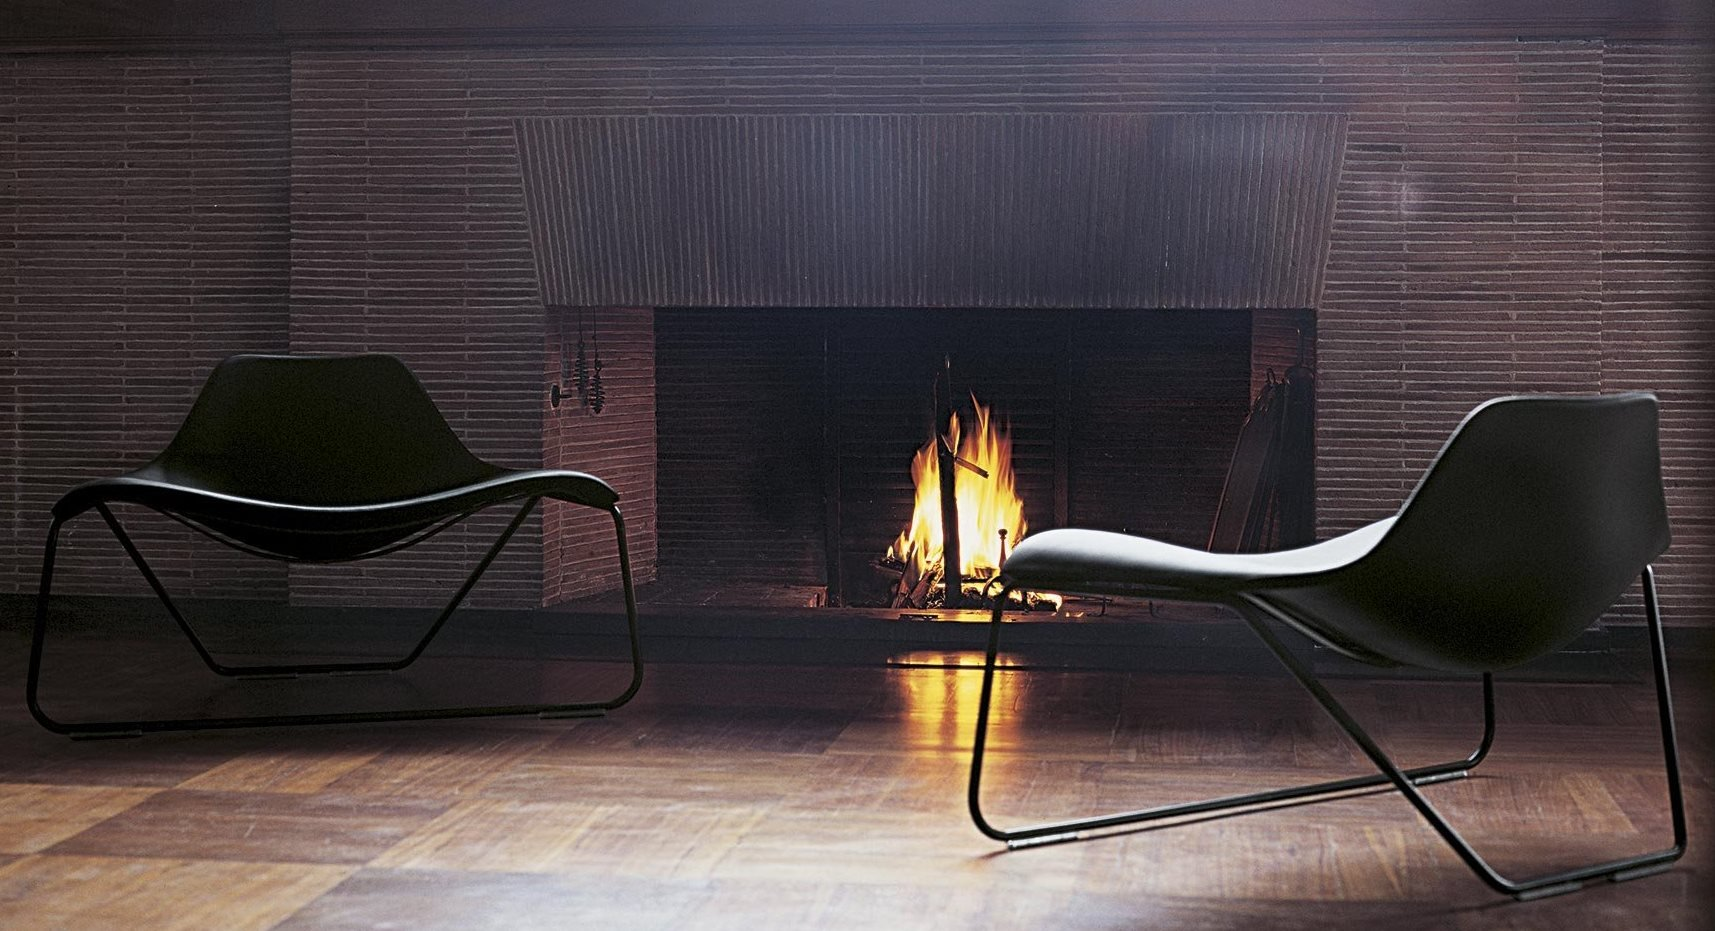 Glide Chair lounge from Tacchini, designed by Monica Förster